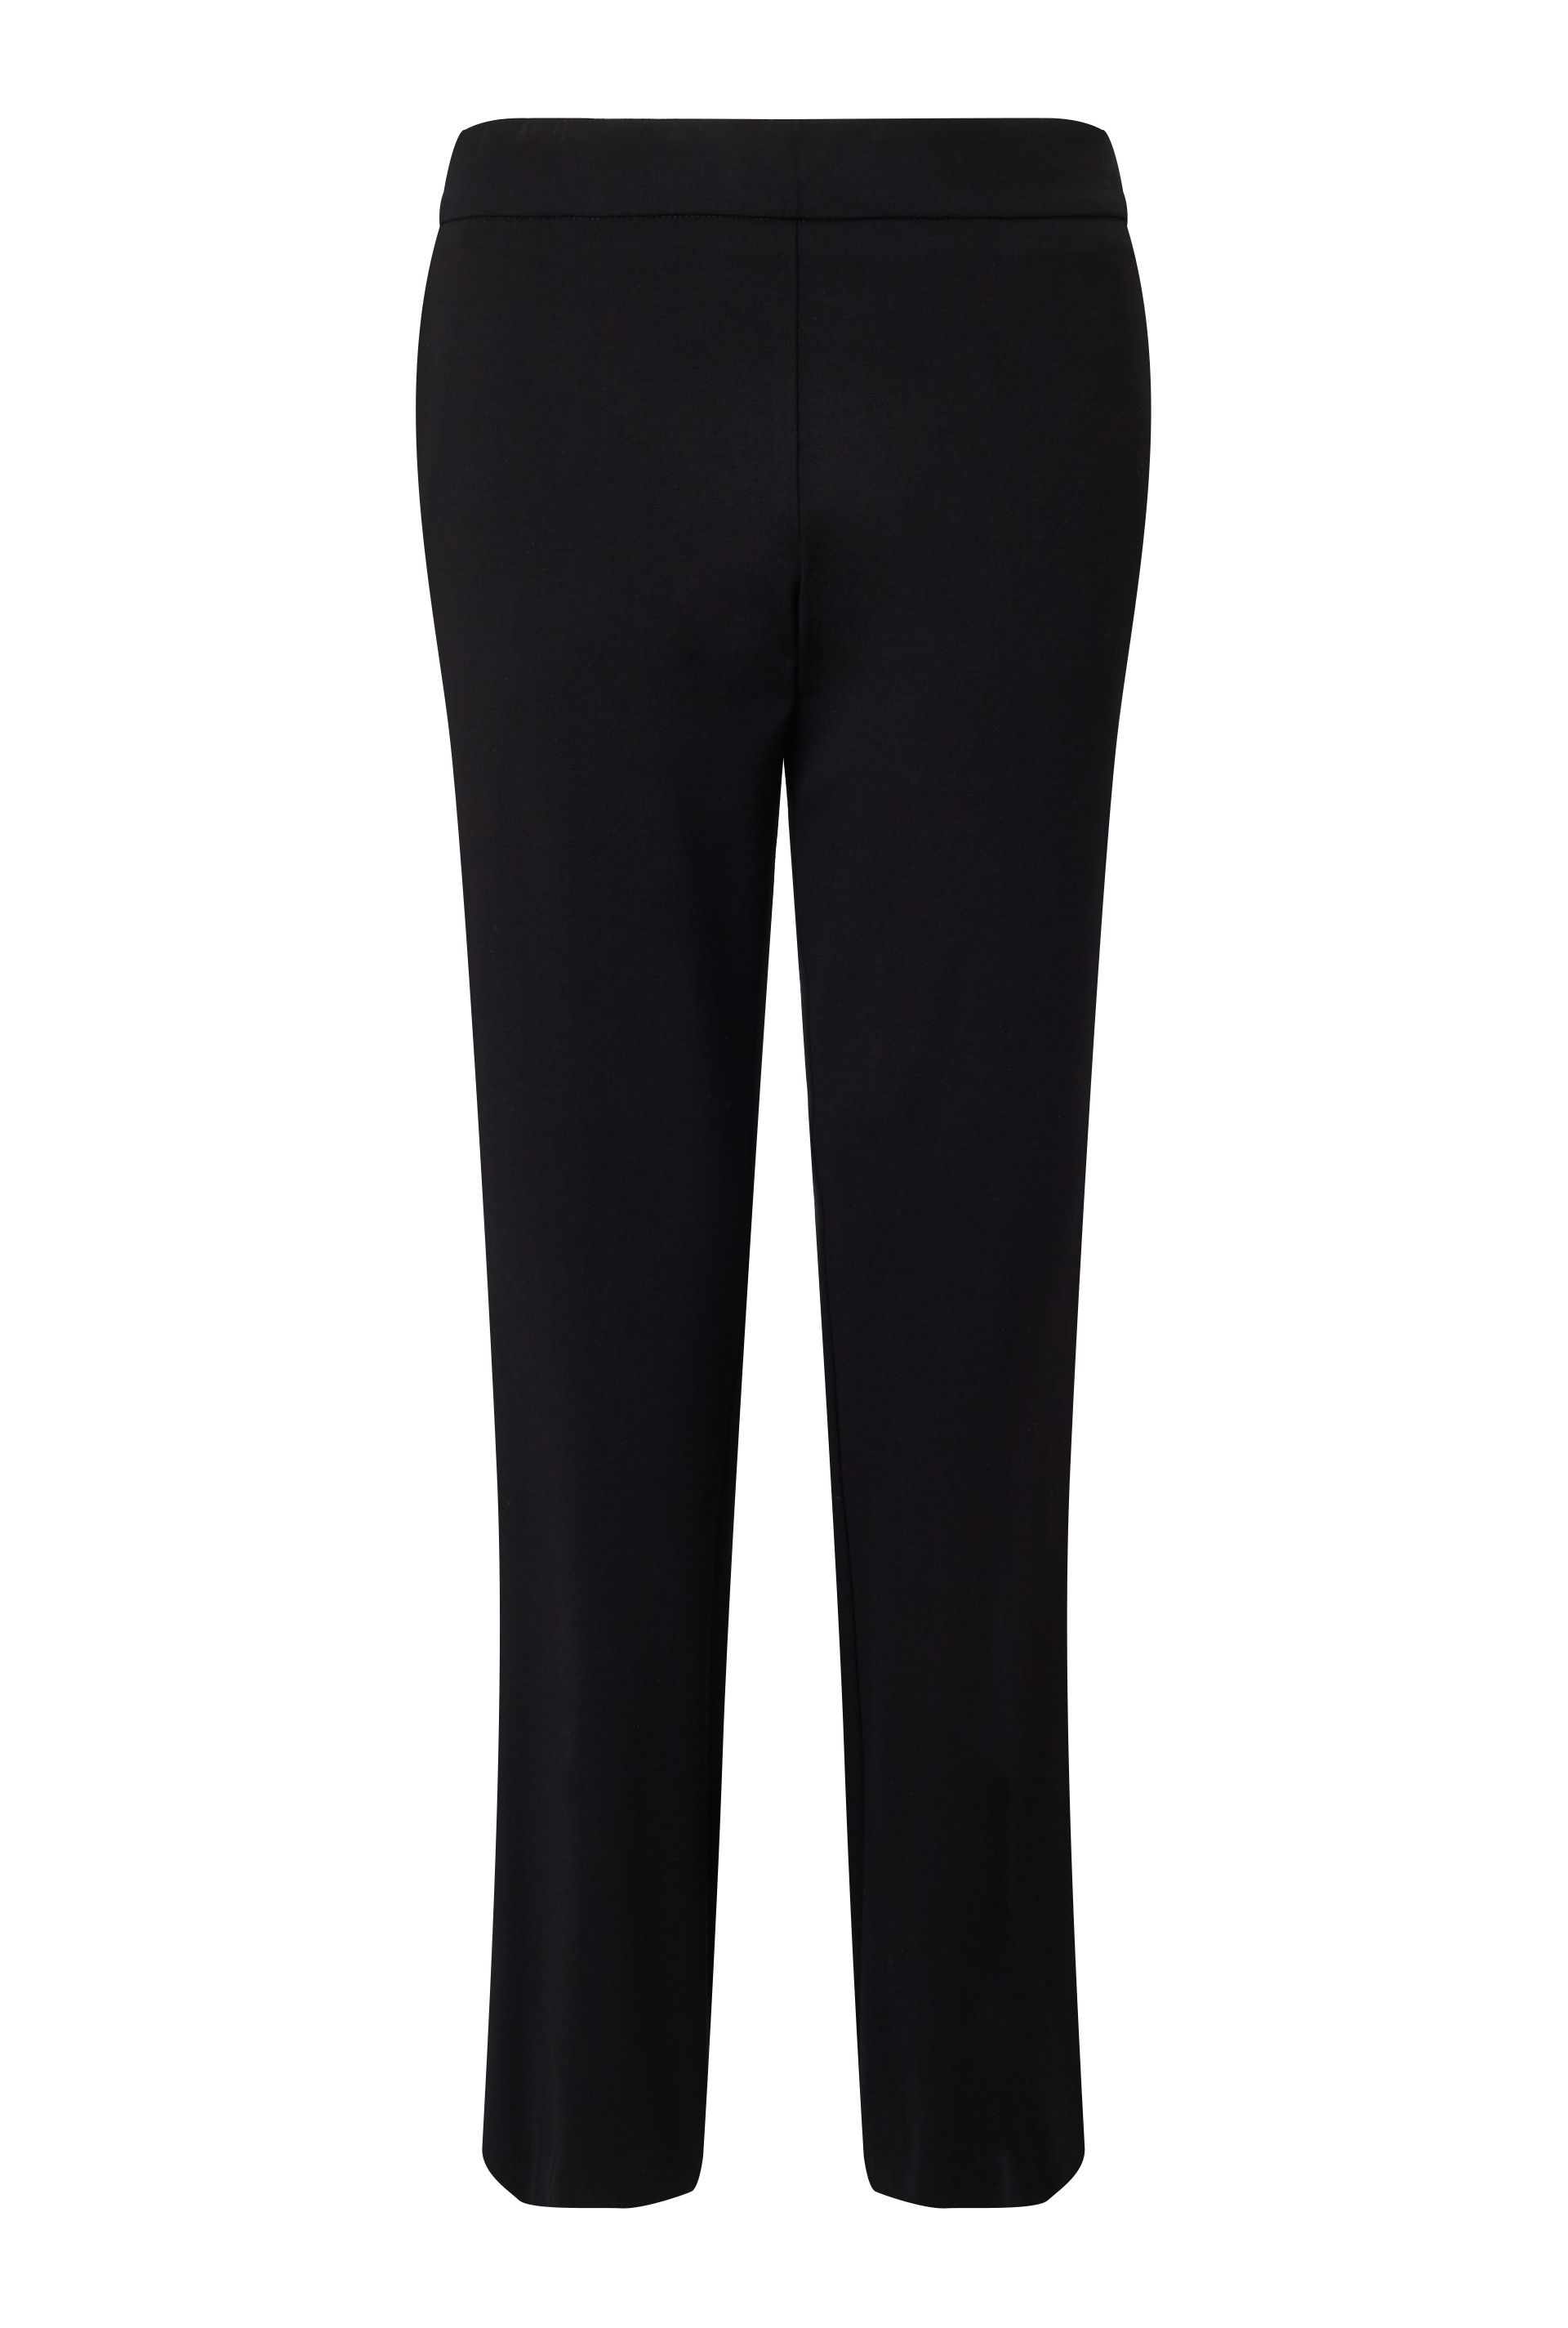 James Lakeland Bow Detail Trousers, Black